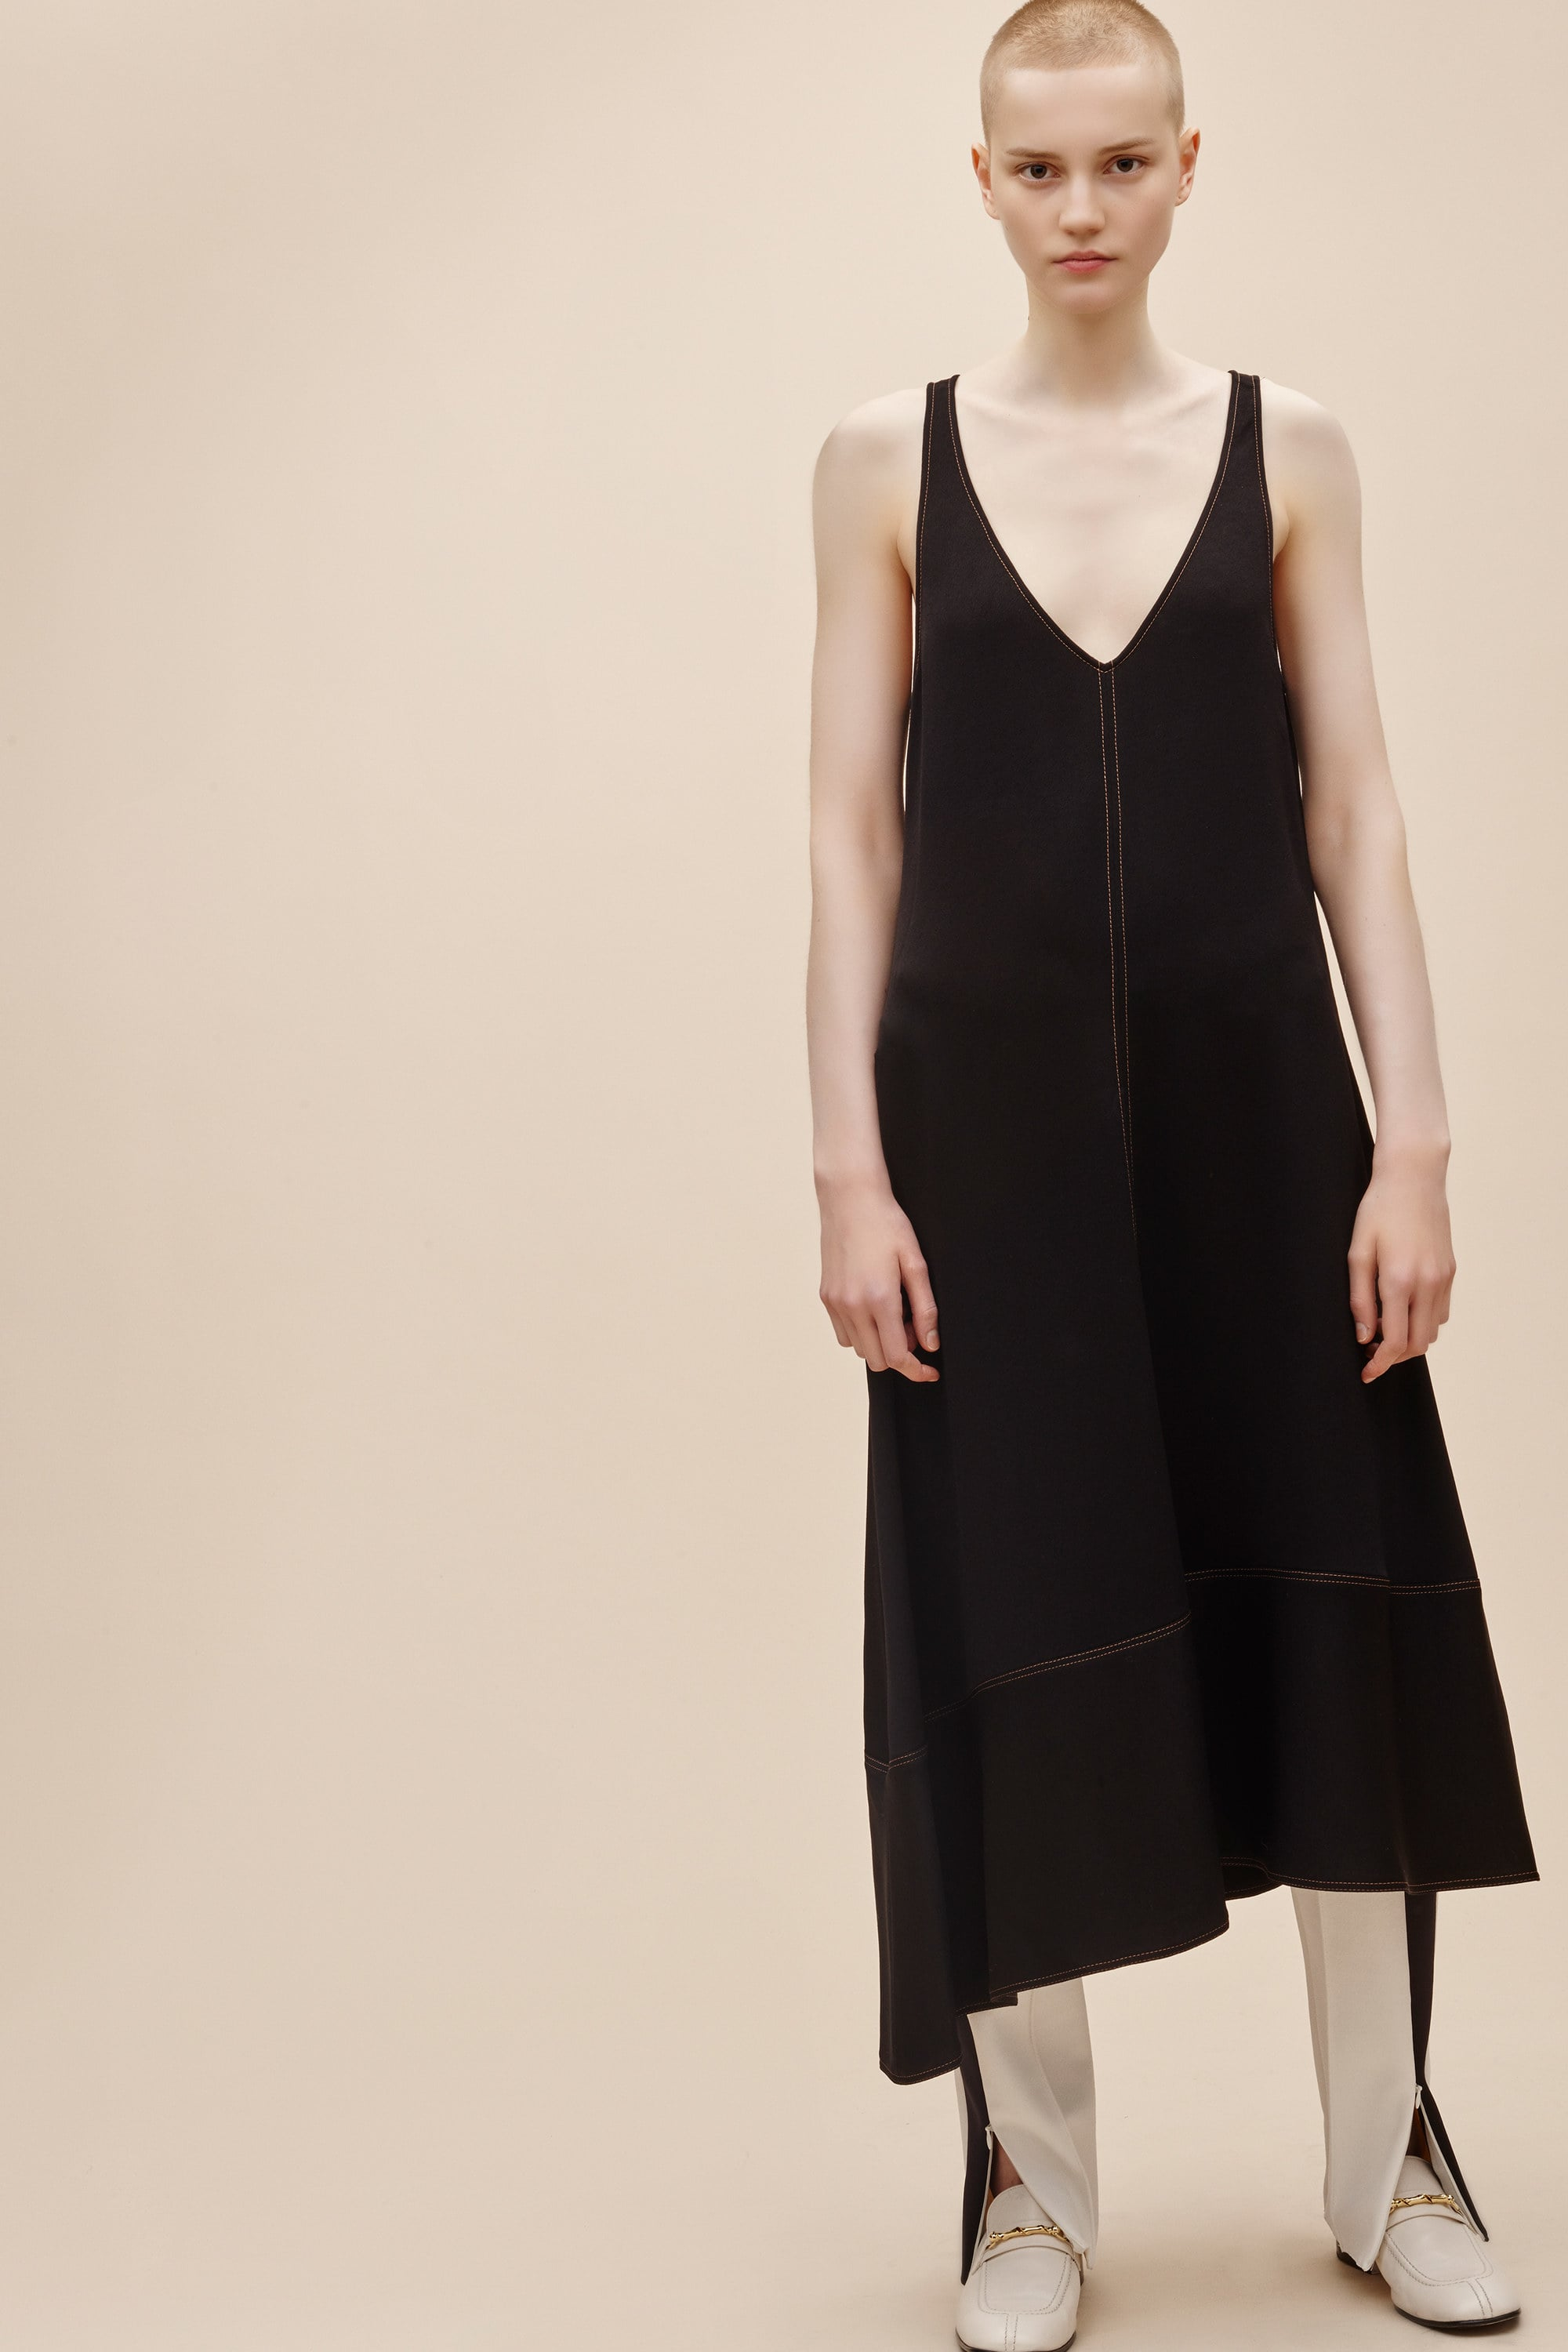 joseph-pre-fall-2016-lookbook-35.jpg